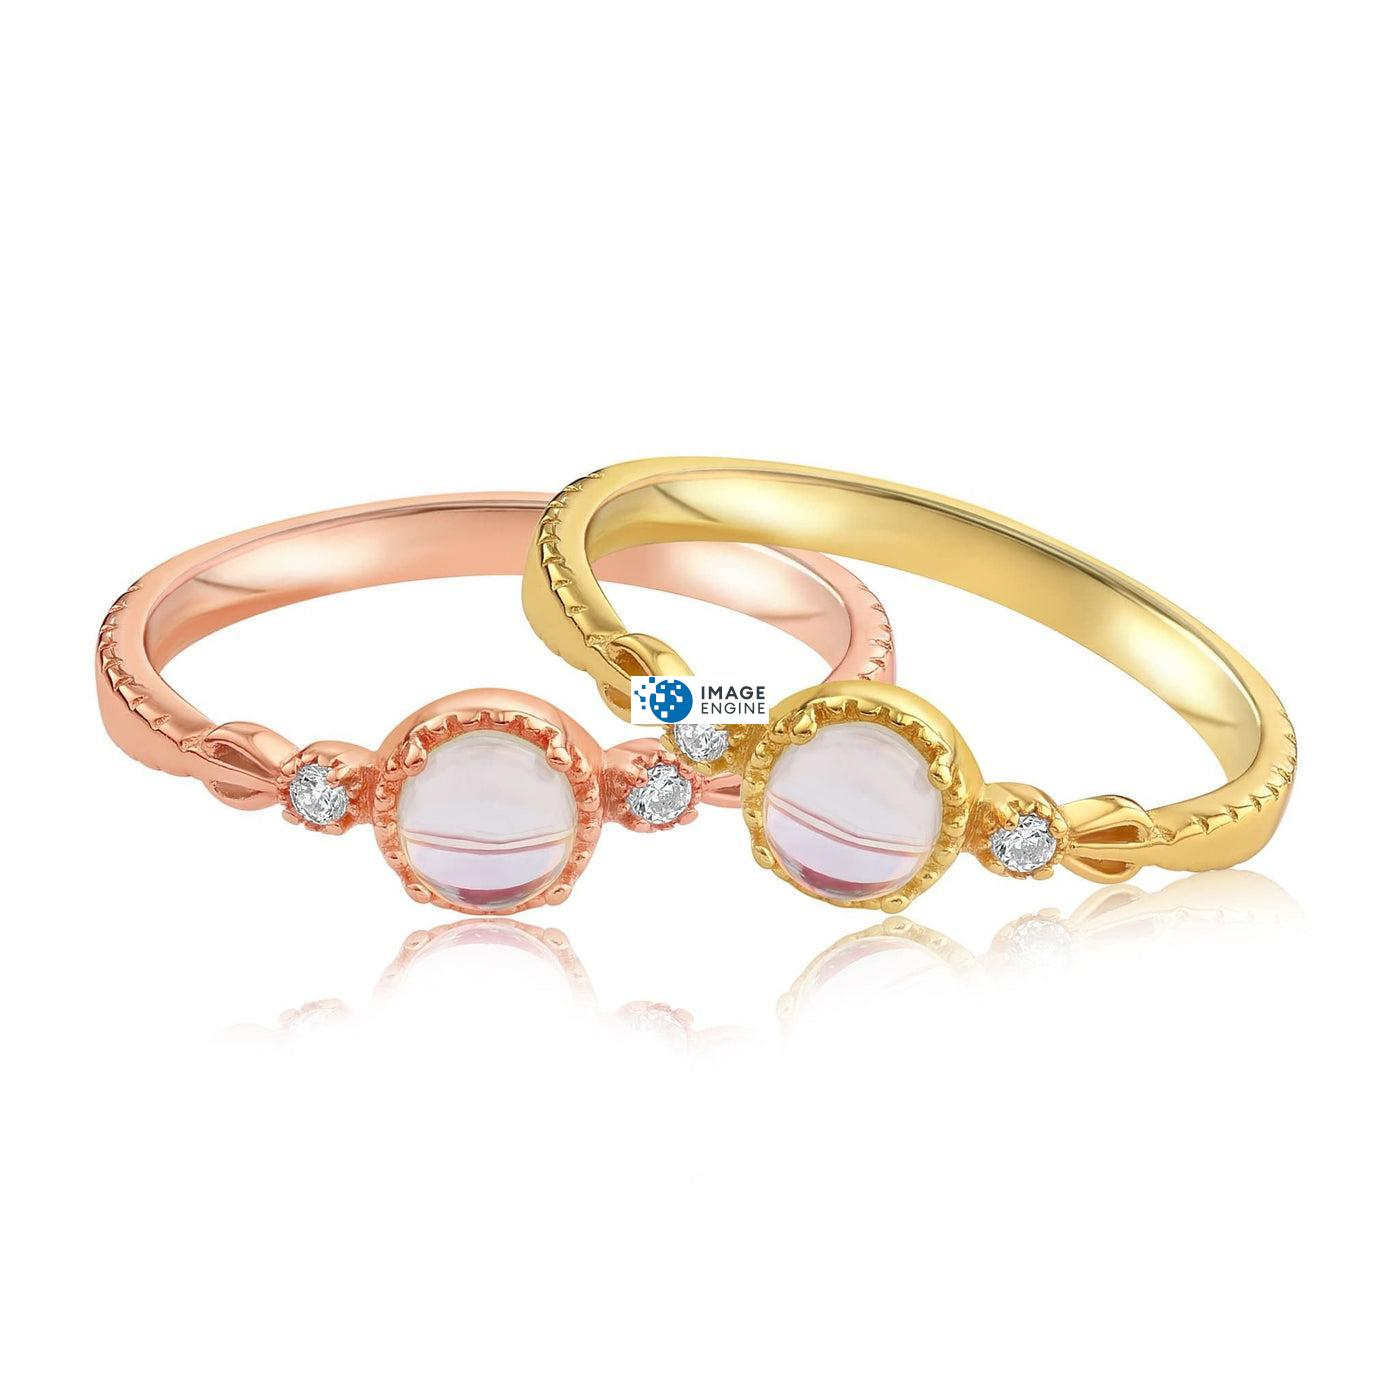 Mystic Moonstone Mood Ring - Front View Side by Side - 18K Rose Gold Vermeil and 18K Yellow Gold Vermeil